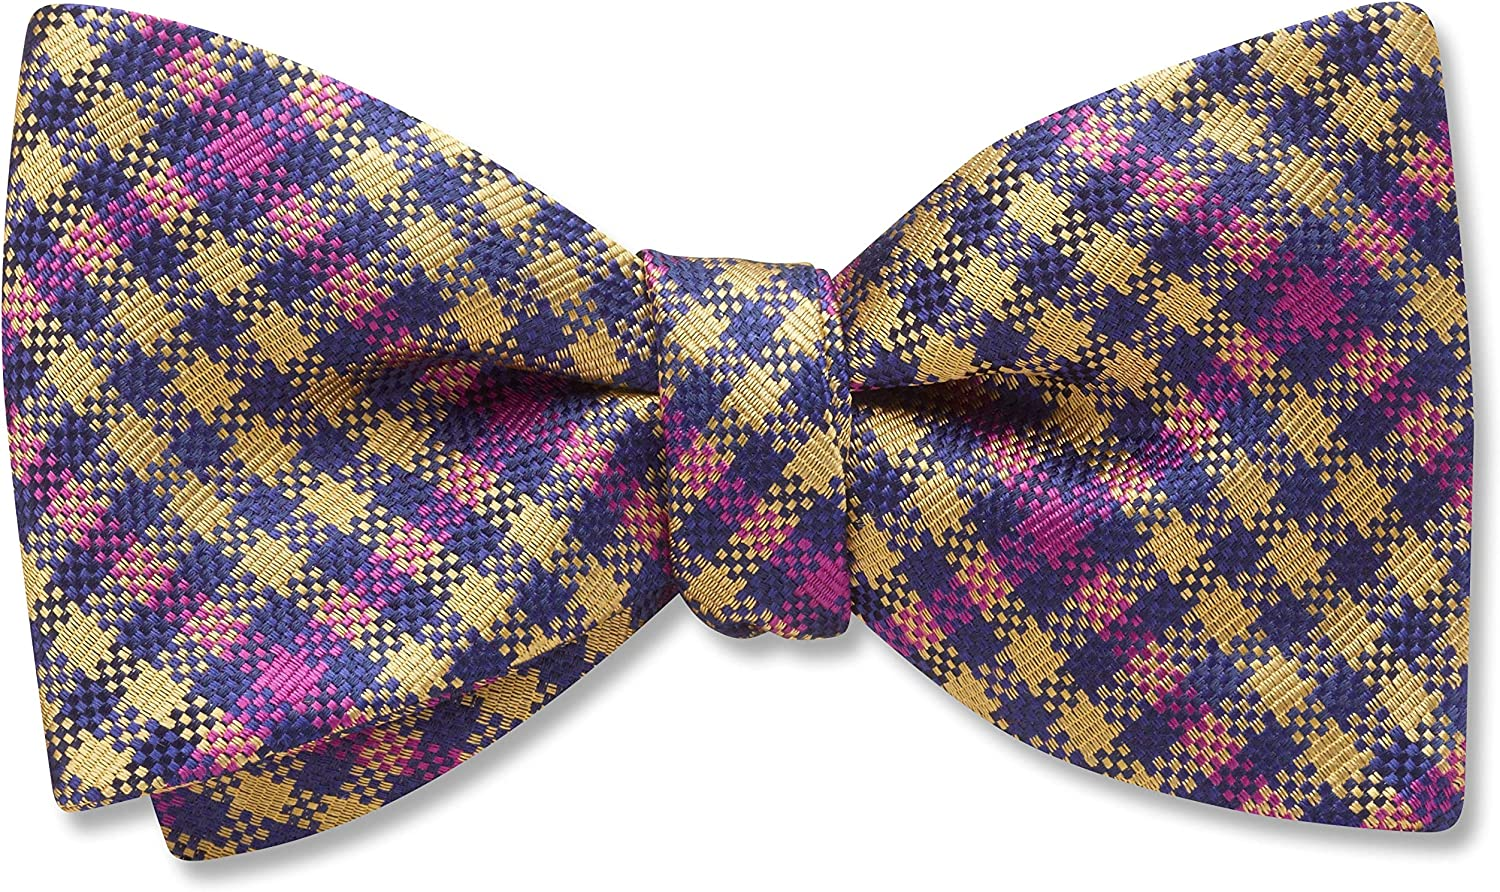 Loch Turret Yellow/Gold,Blue Plaid, Men's Bow Tie, Handmade in the USA